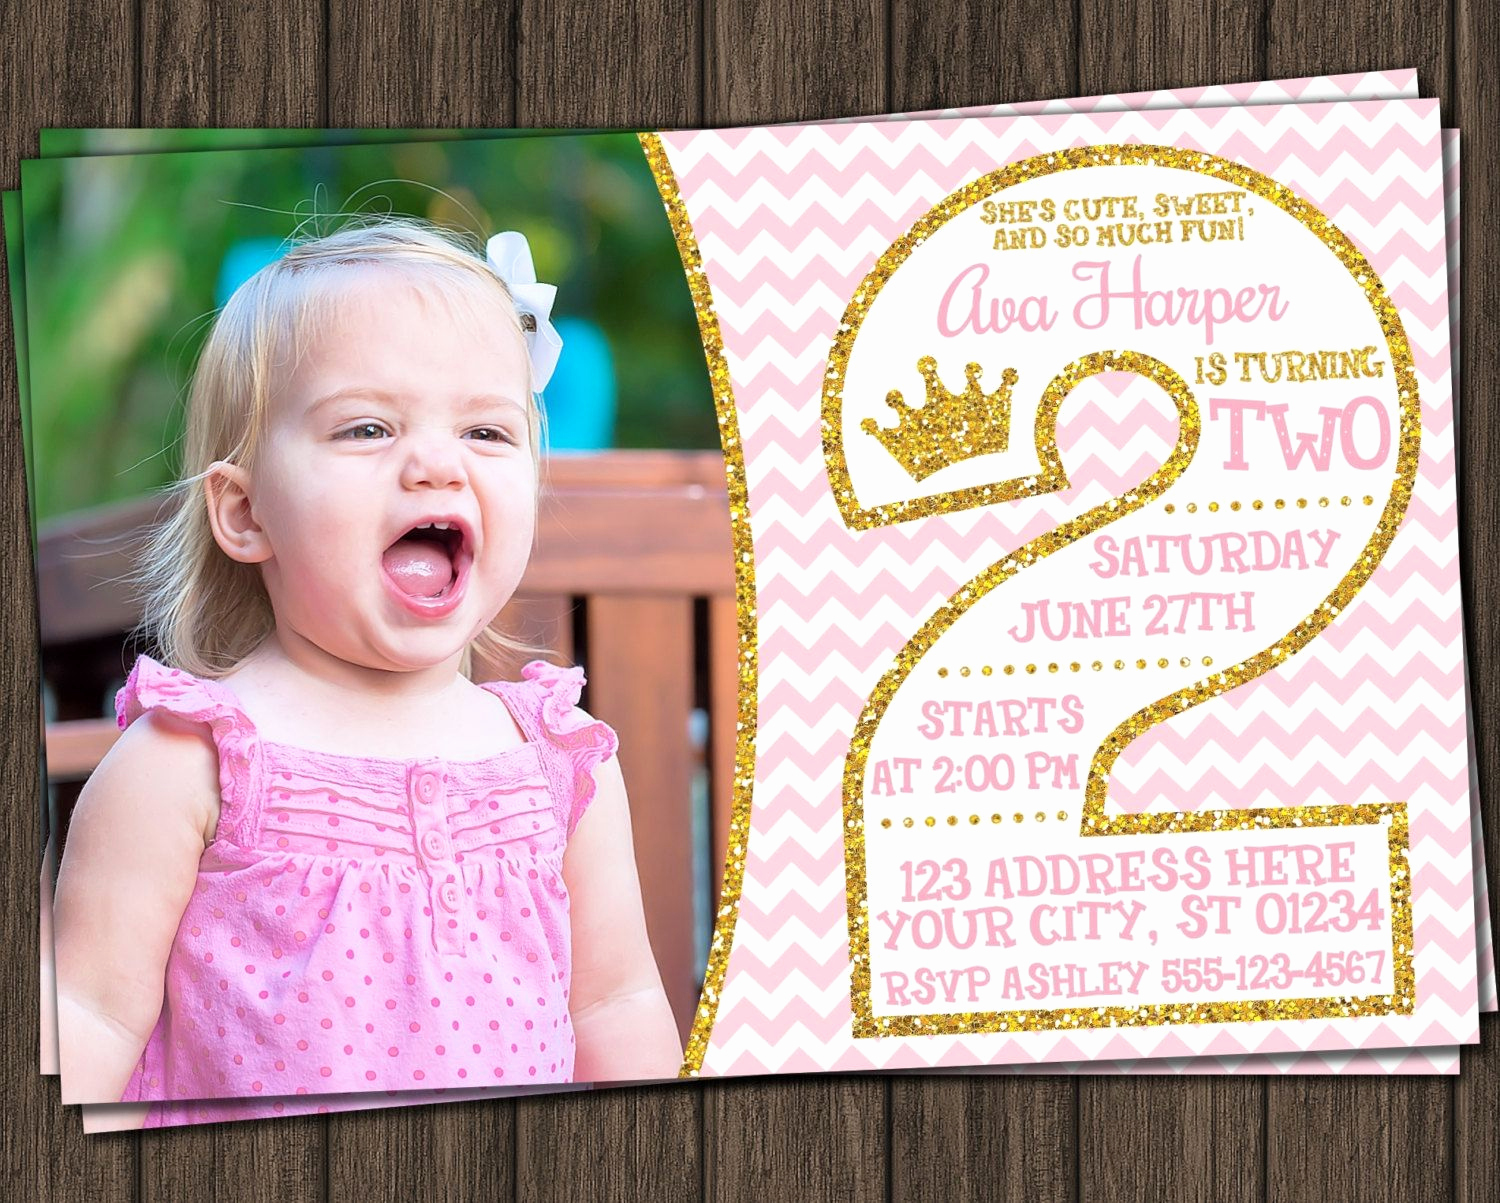 2nd Birthday Invitation Wording Best Of Princess 2nd Birthday Invitation In Pink and Gold with